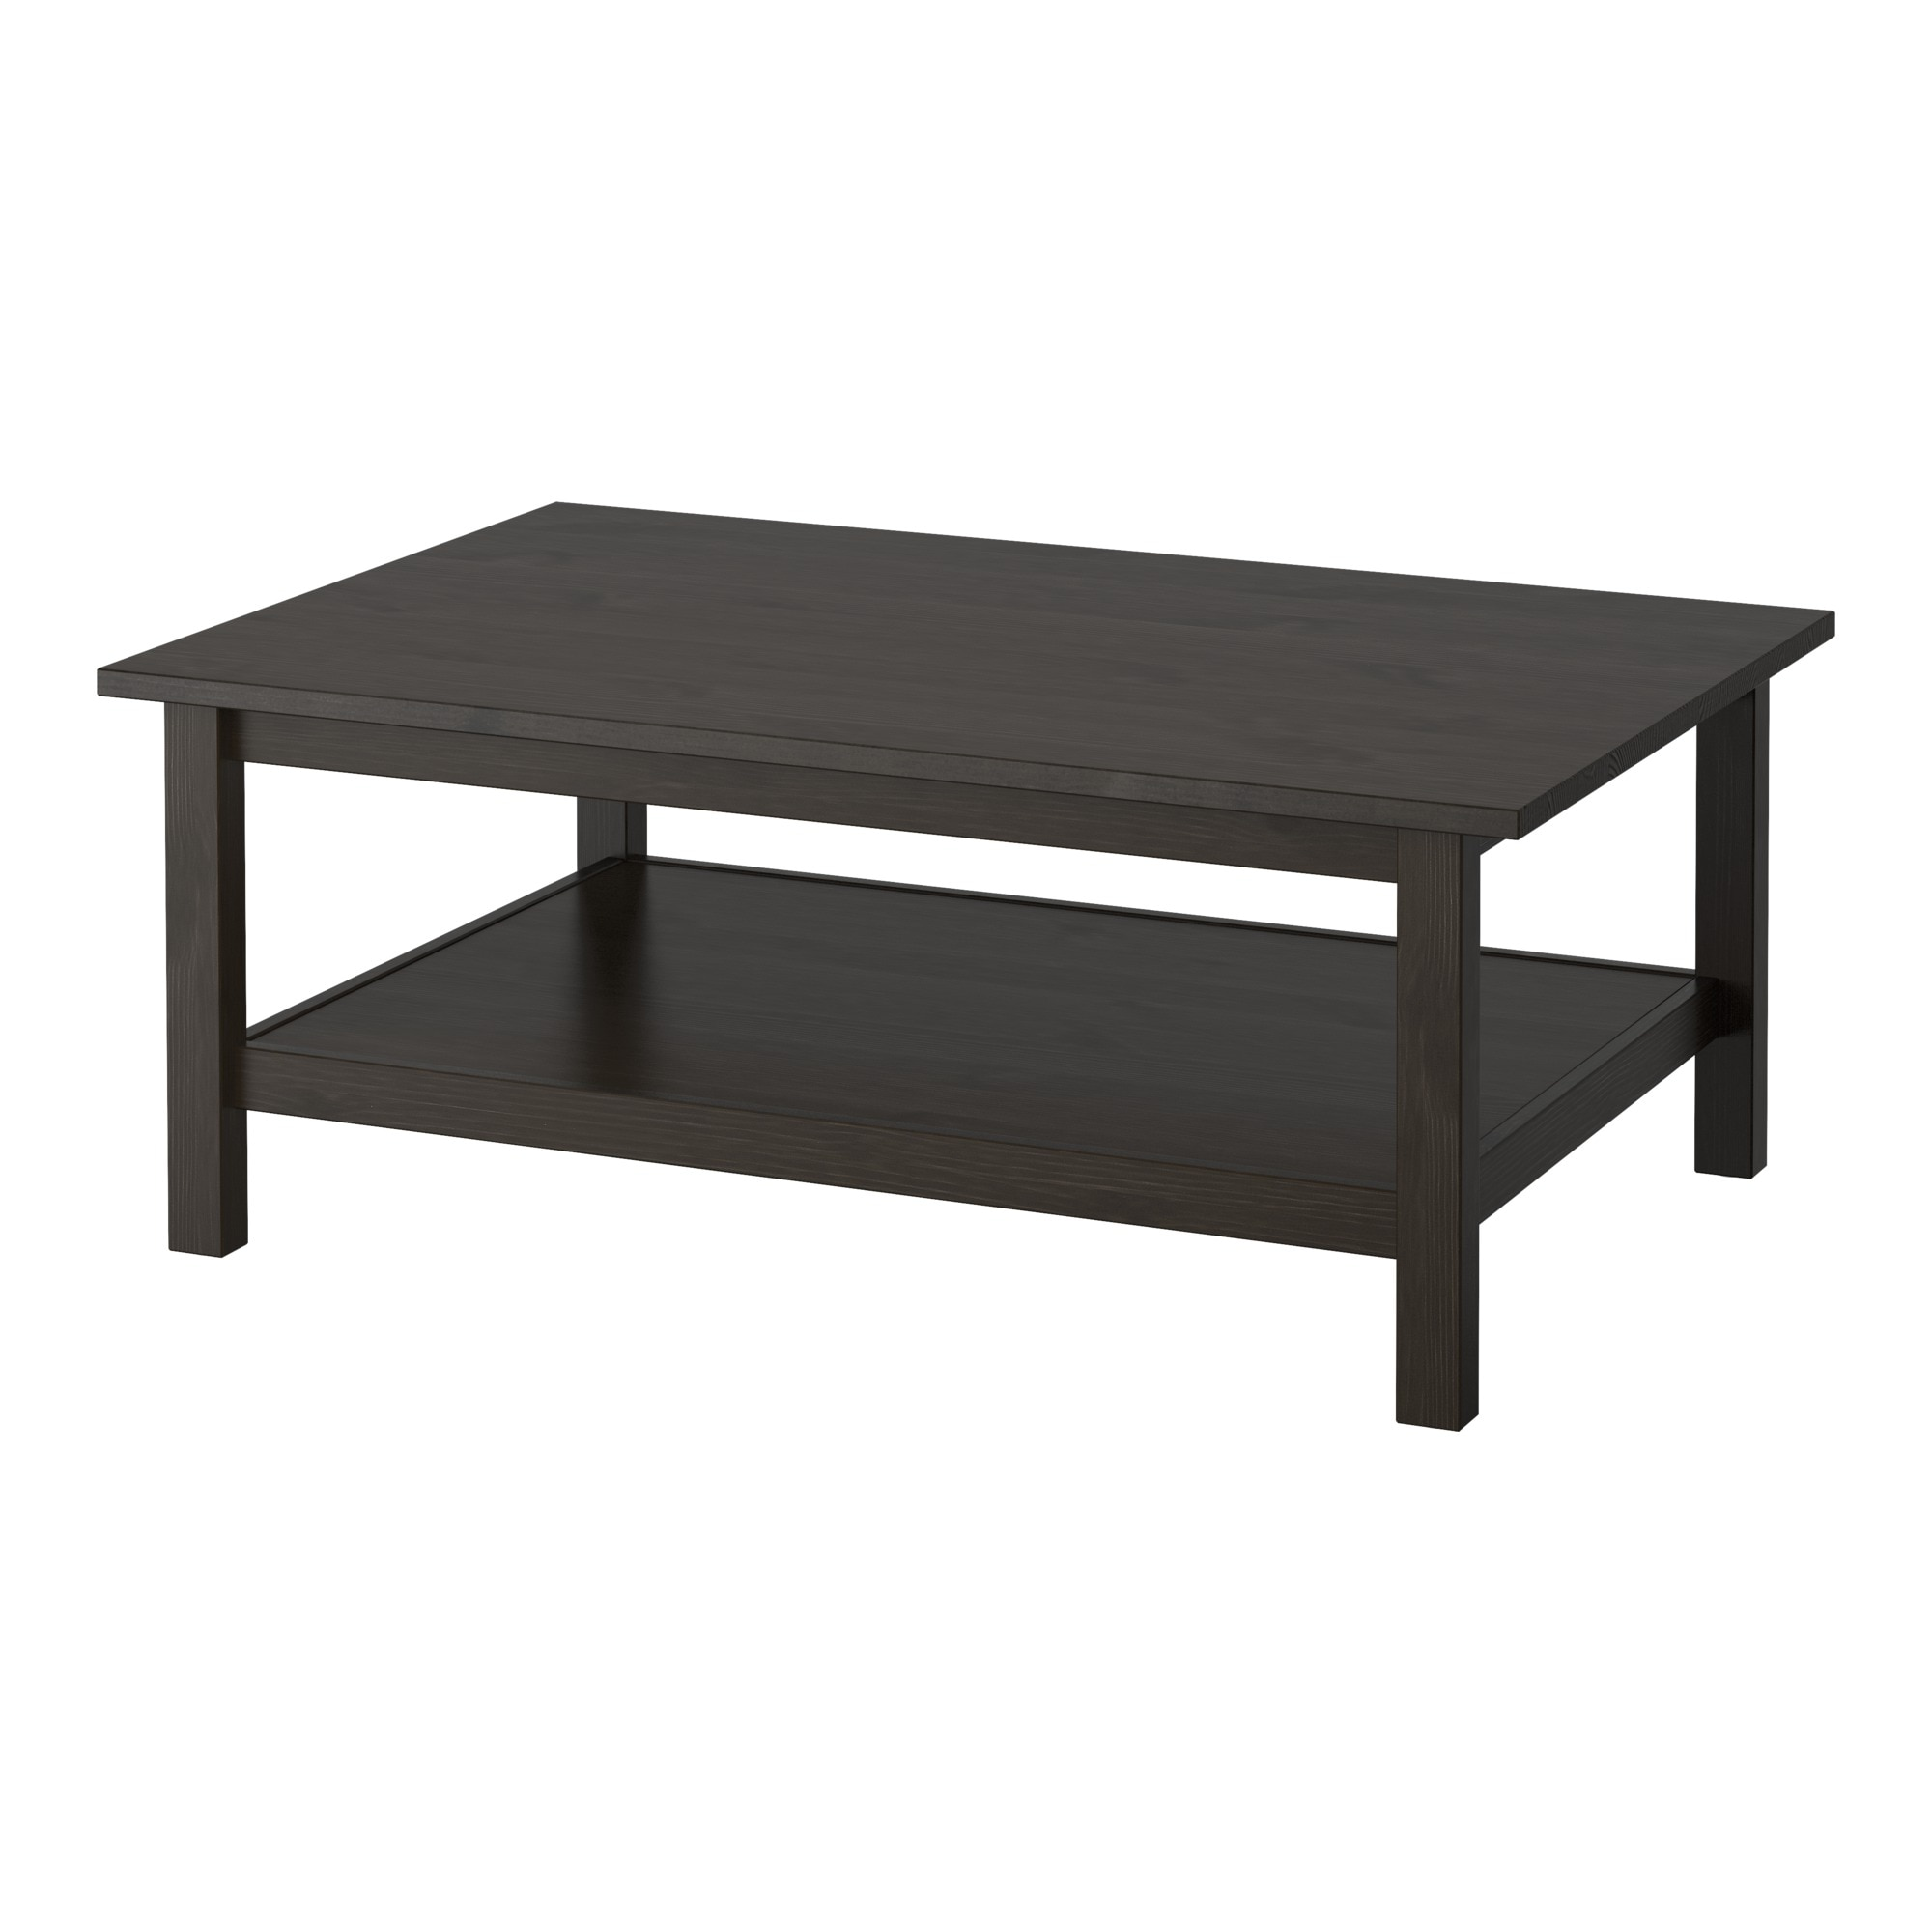 Exceptionnel HEMNES Coffee Table   Black Brown   IKEA